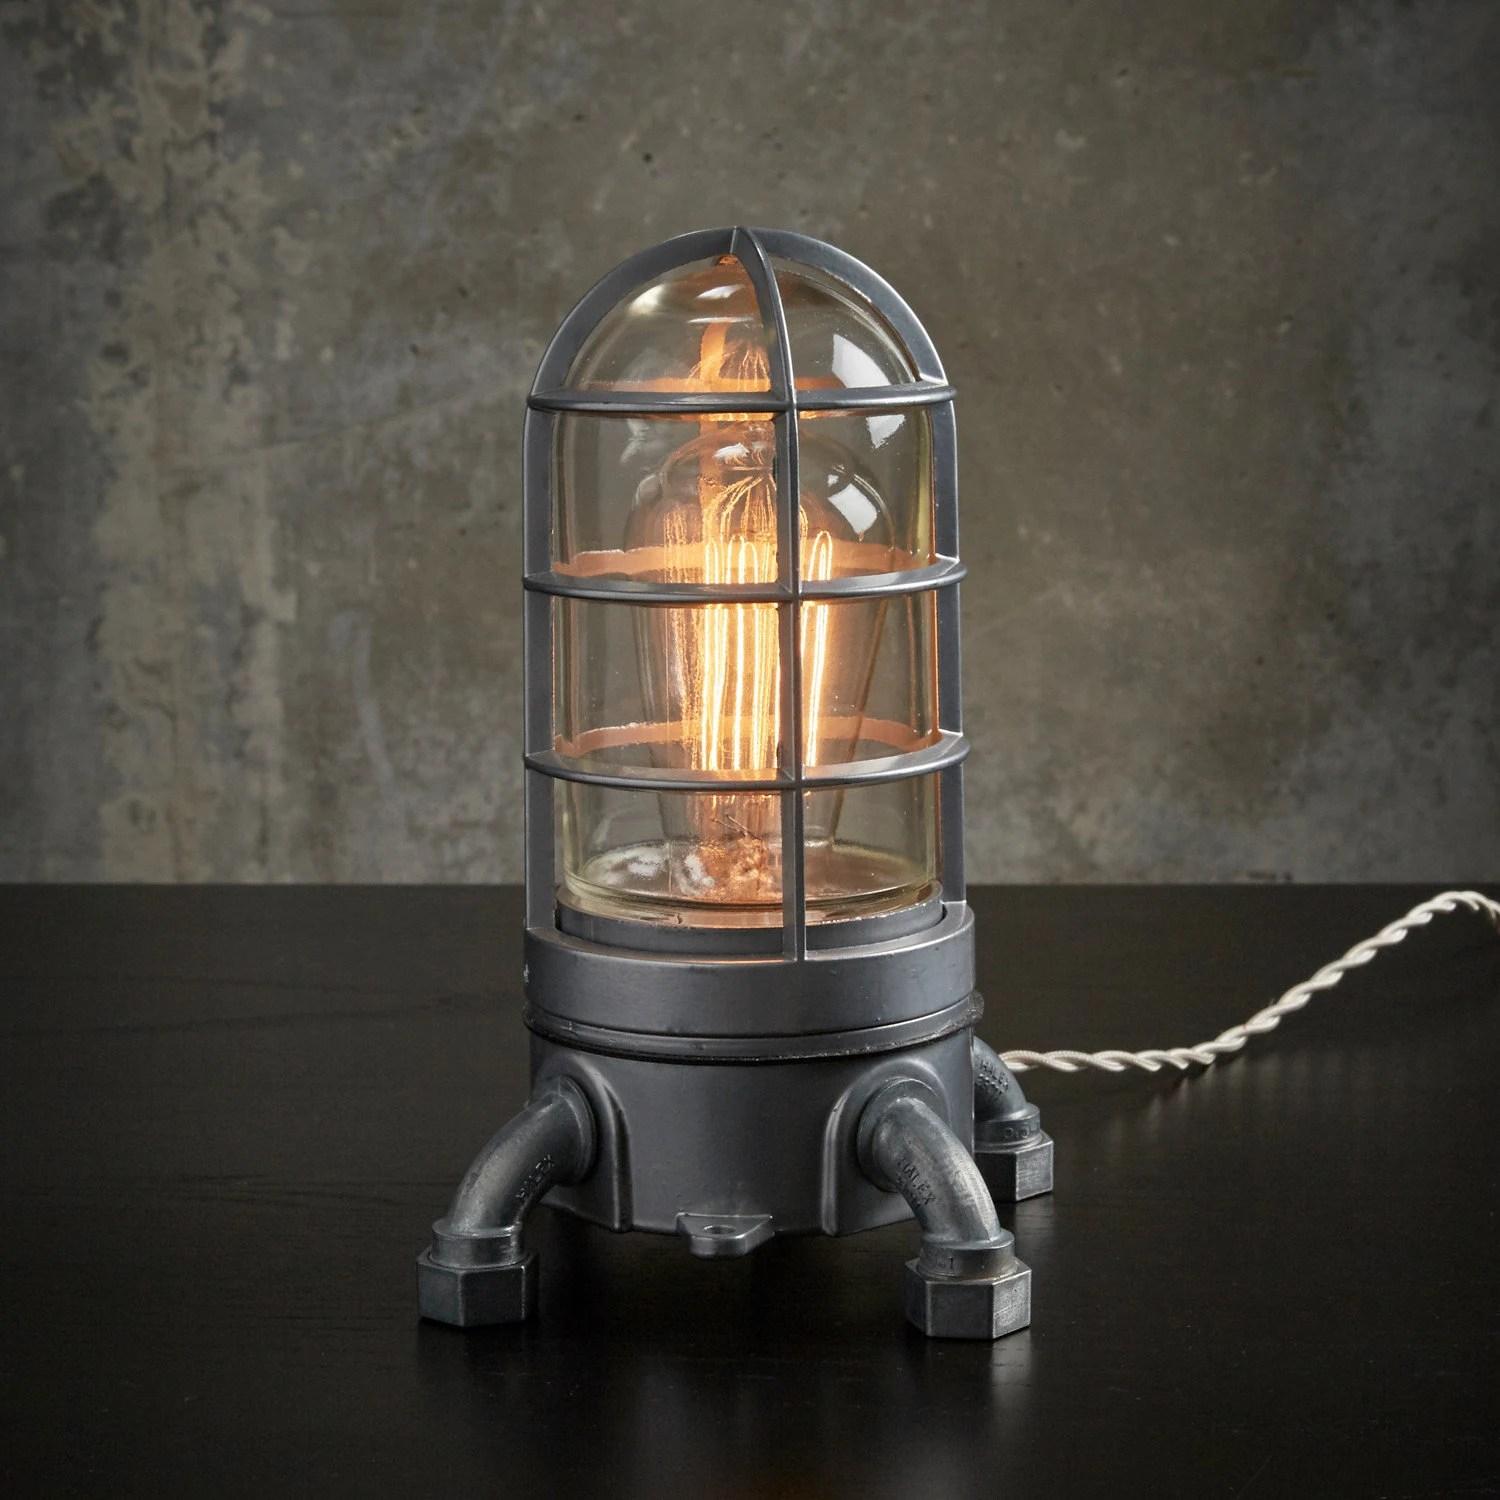 Lighthouse Touch Lamp The Vapor Touch 2 Industrial Lamp W Touch